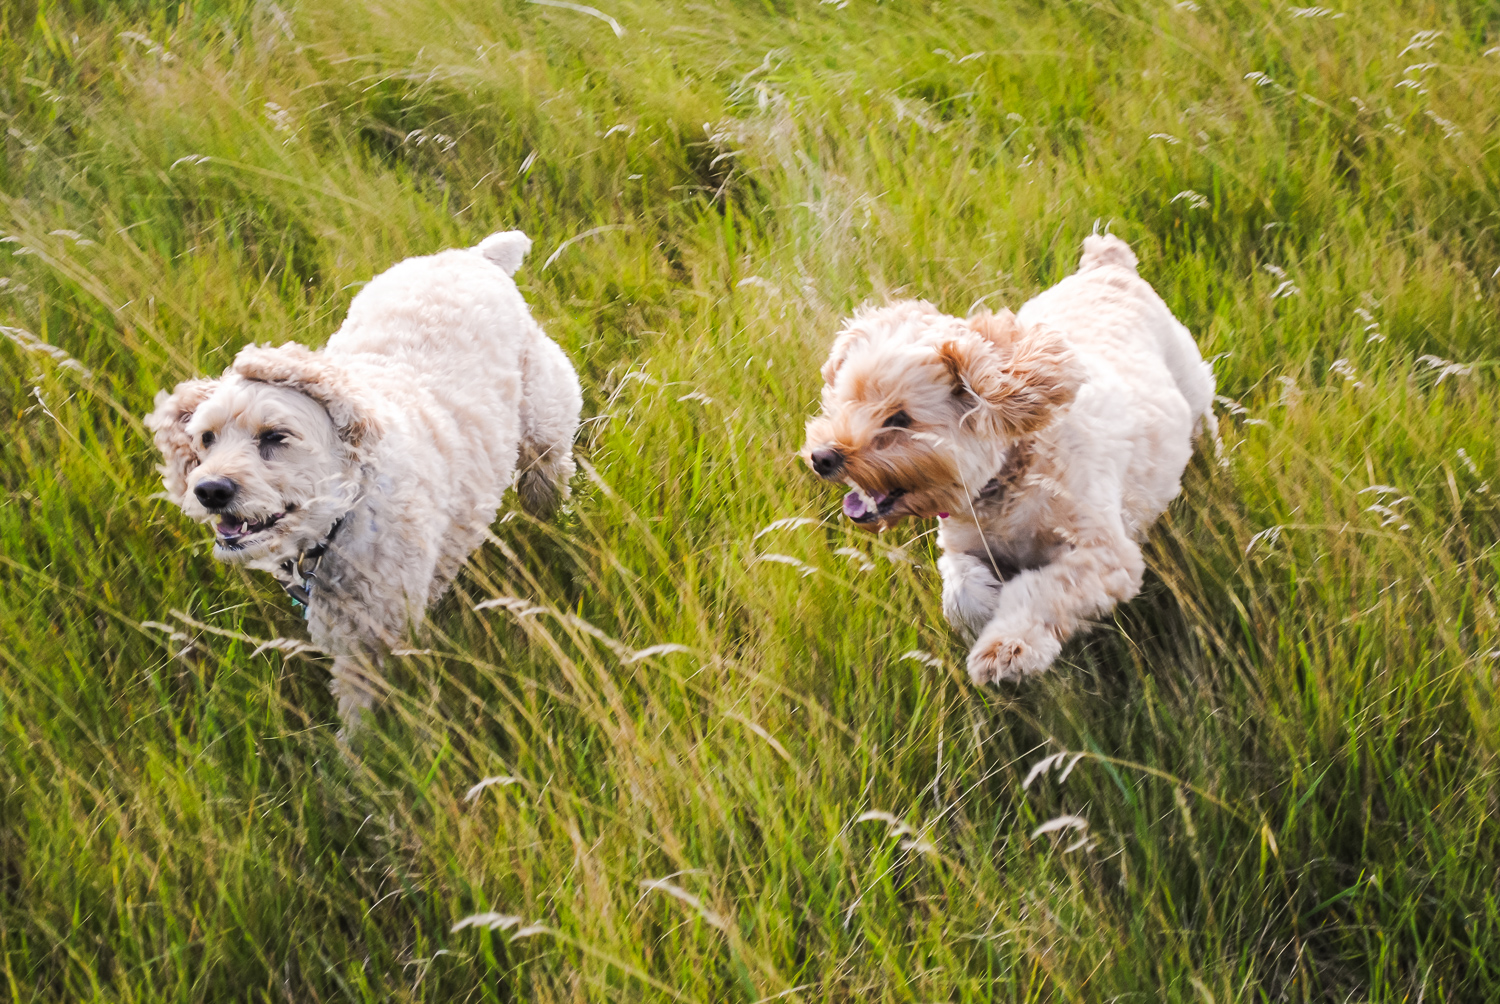 Two dogs running together